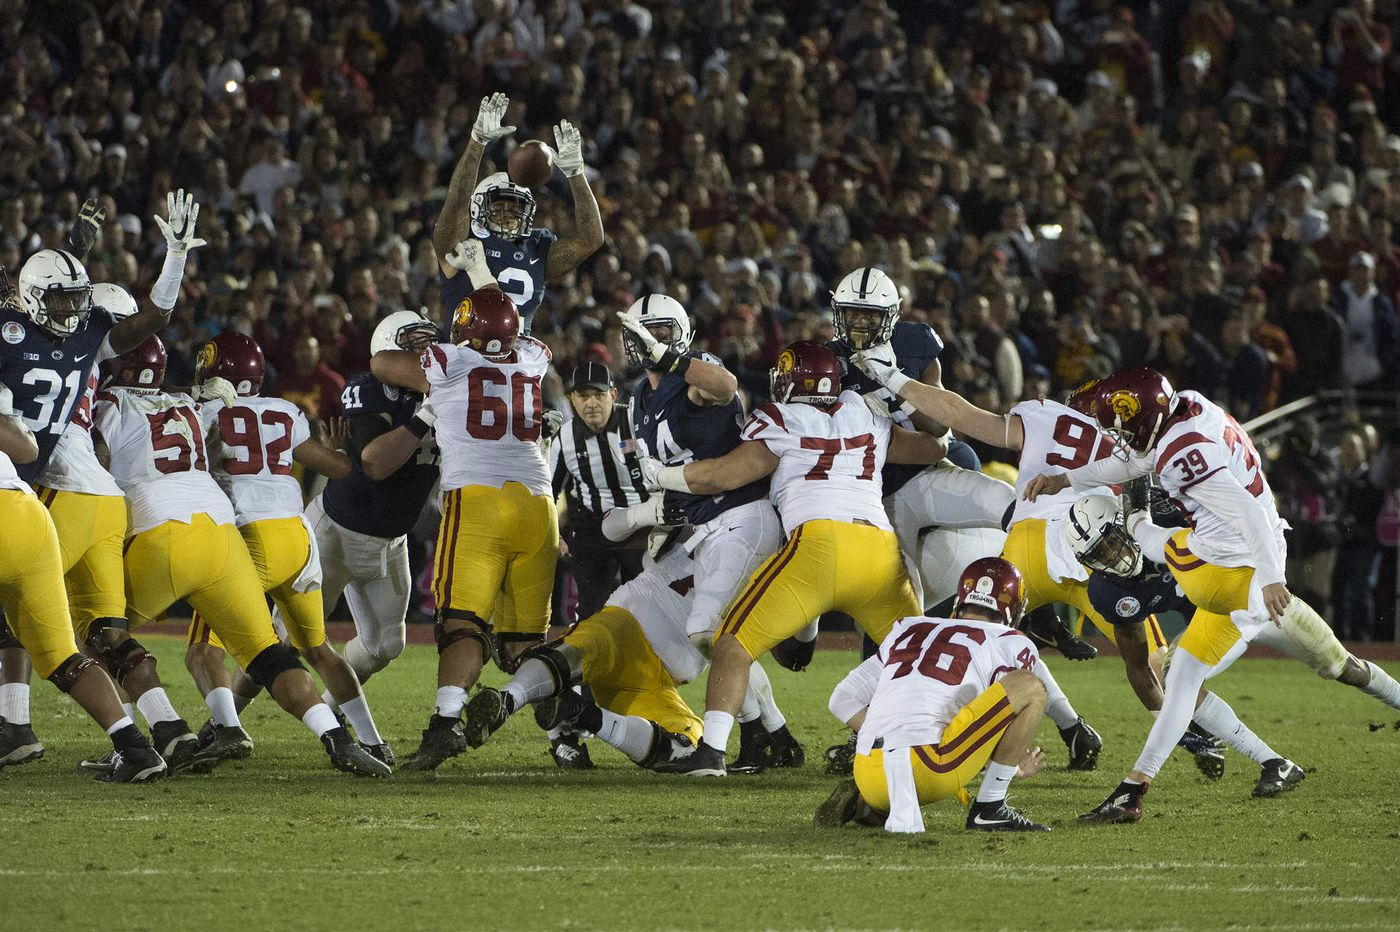 Penn State still has a shot at the Rose Bowl but needs some help